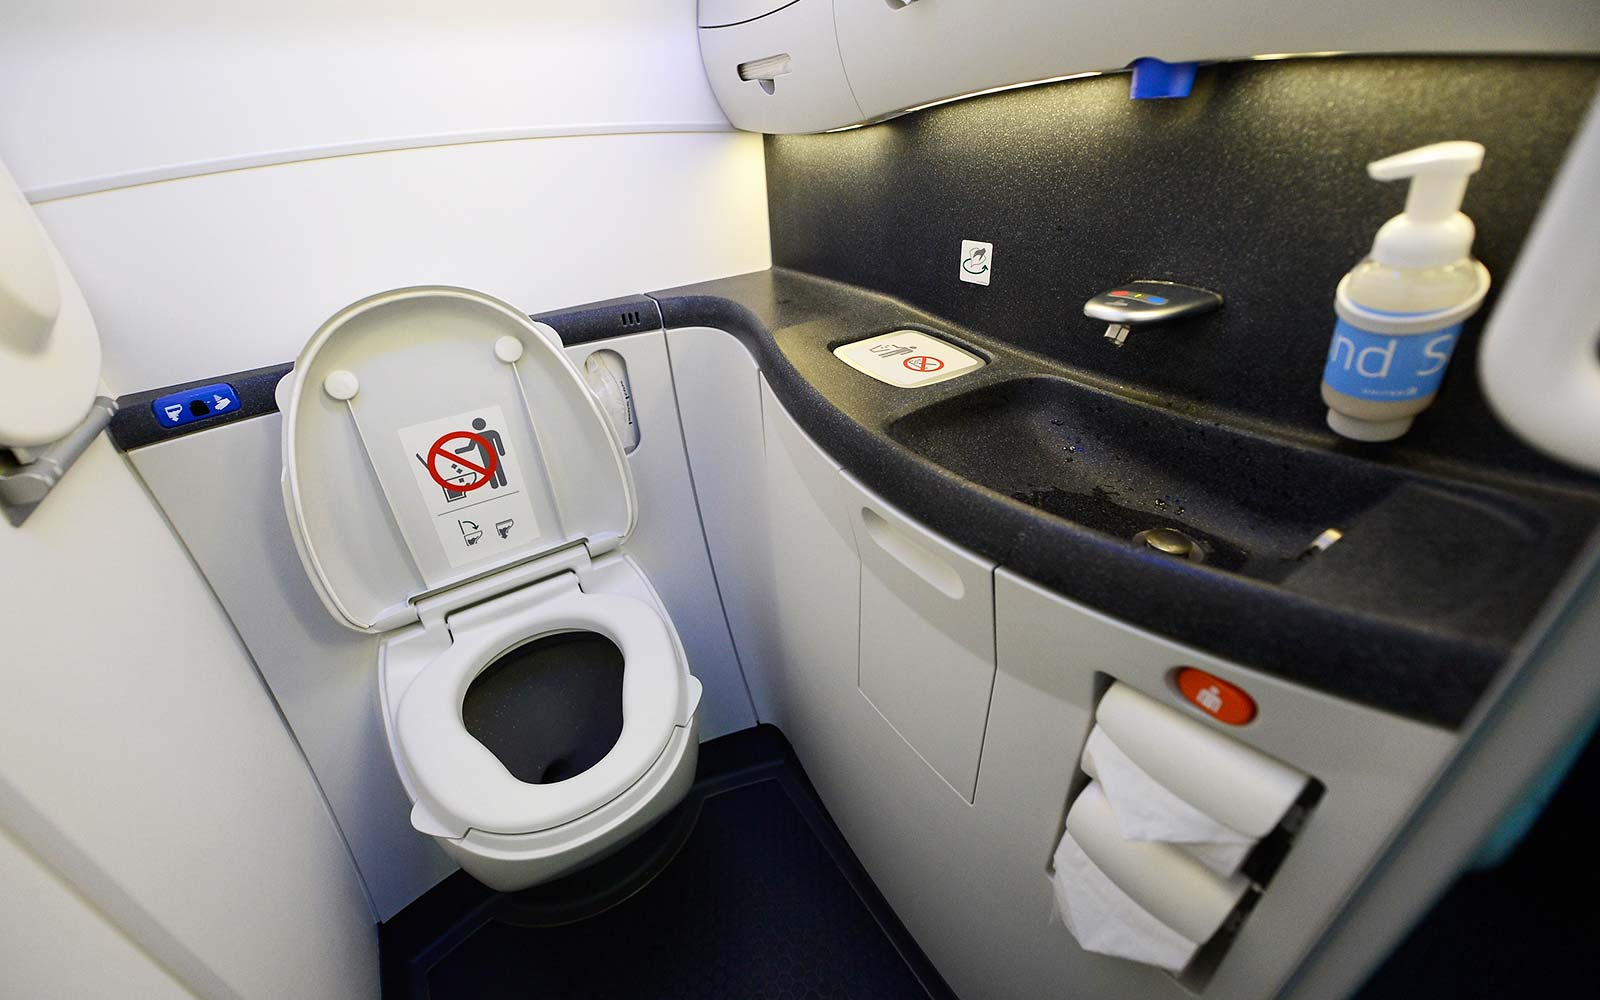 When to use the bathroom on a plane